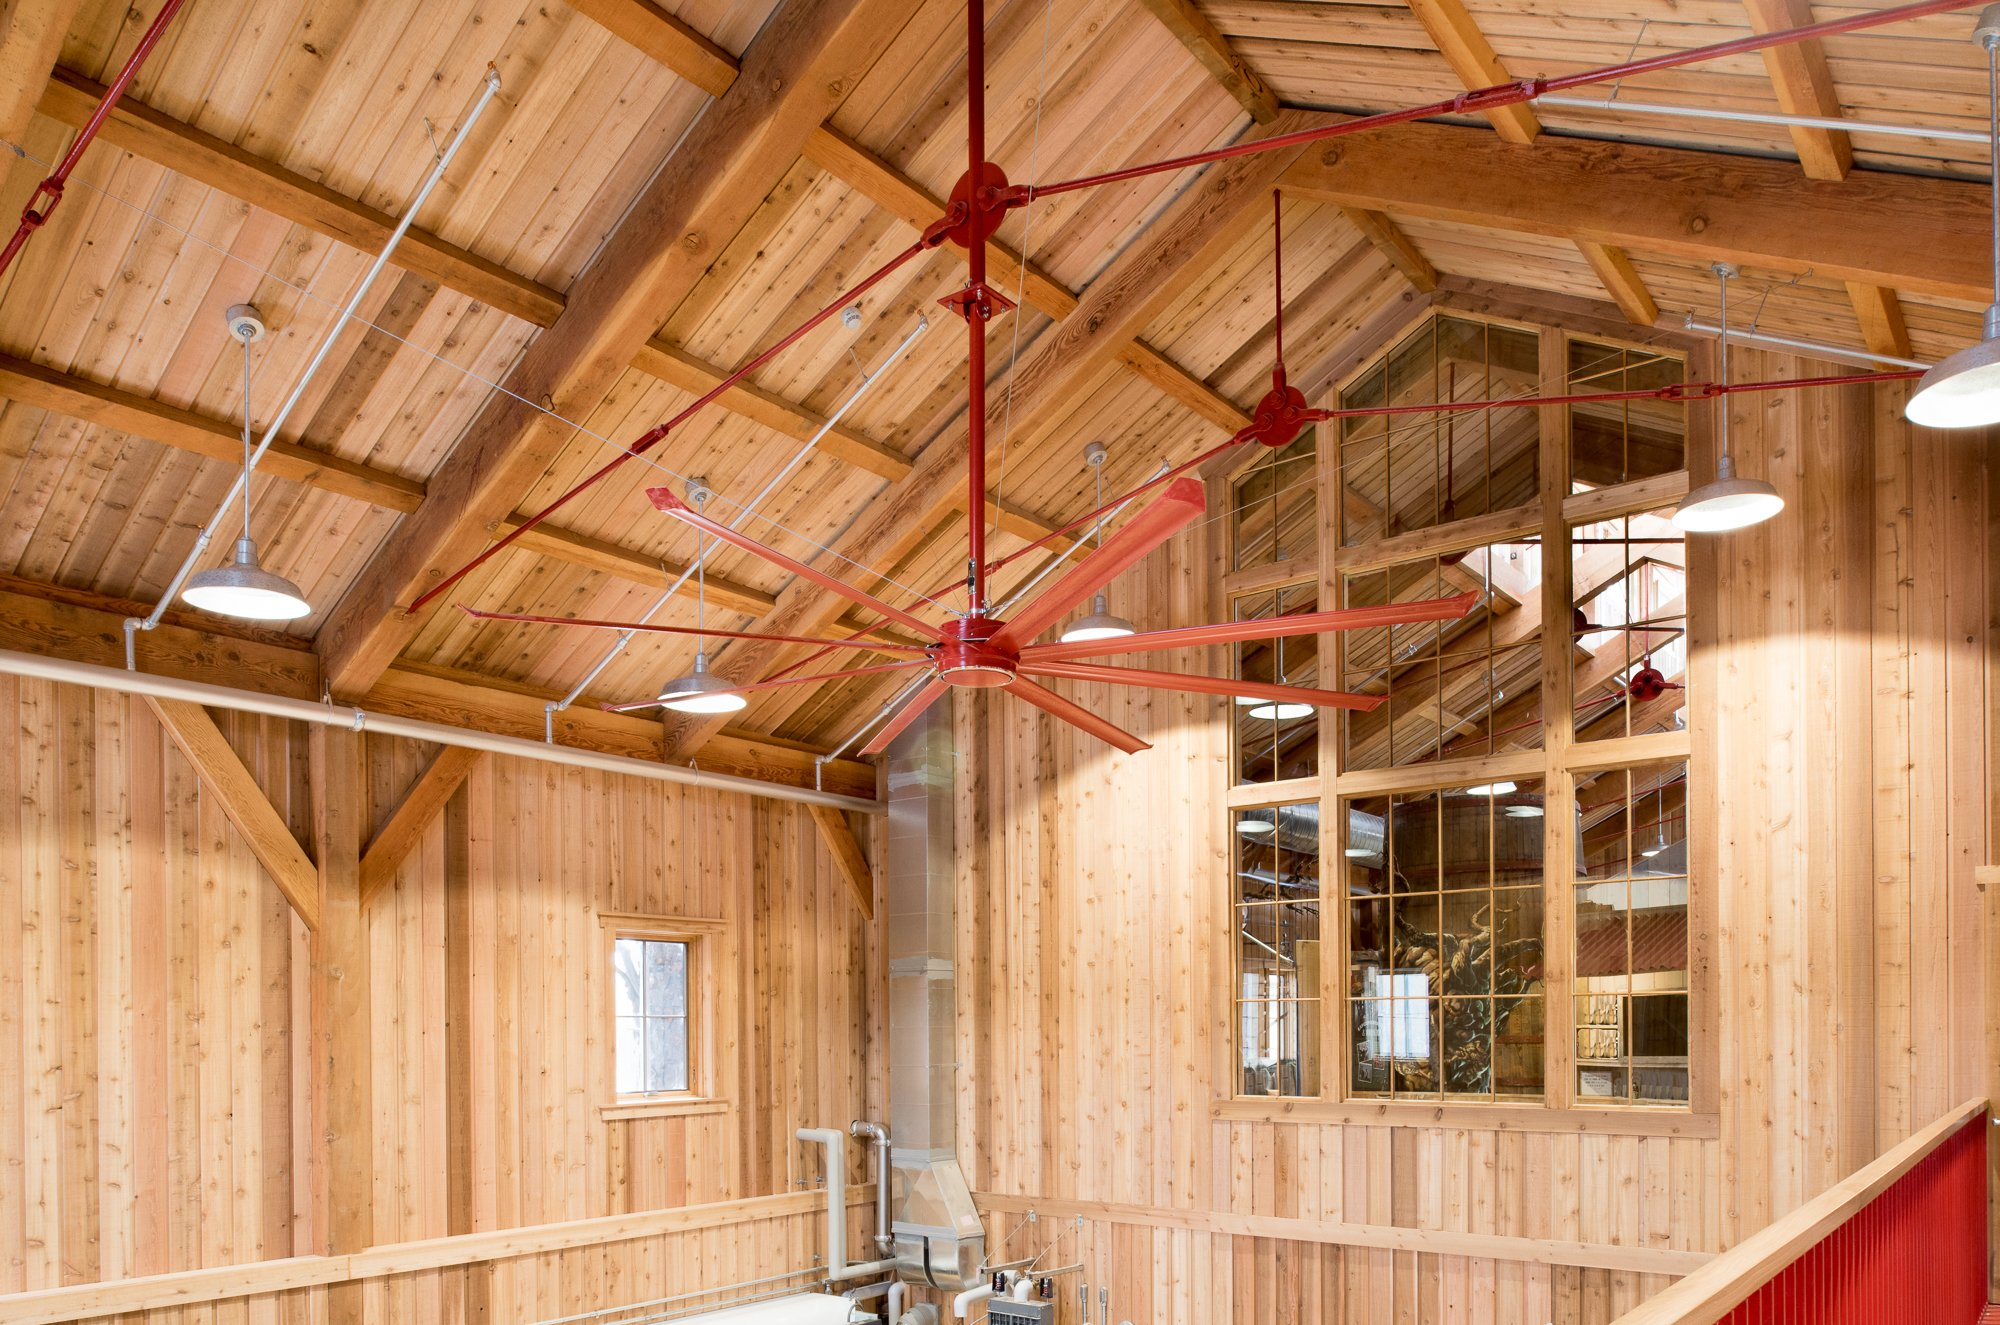 Handcrafted Timber Frame For A Cidery In New England